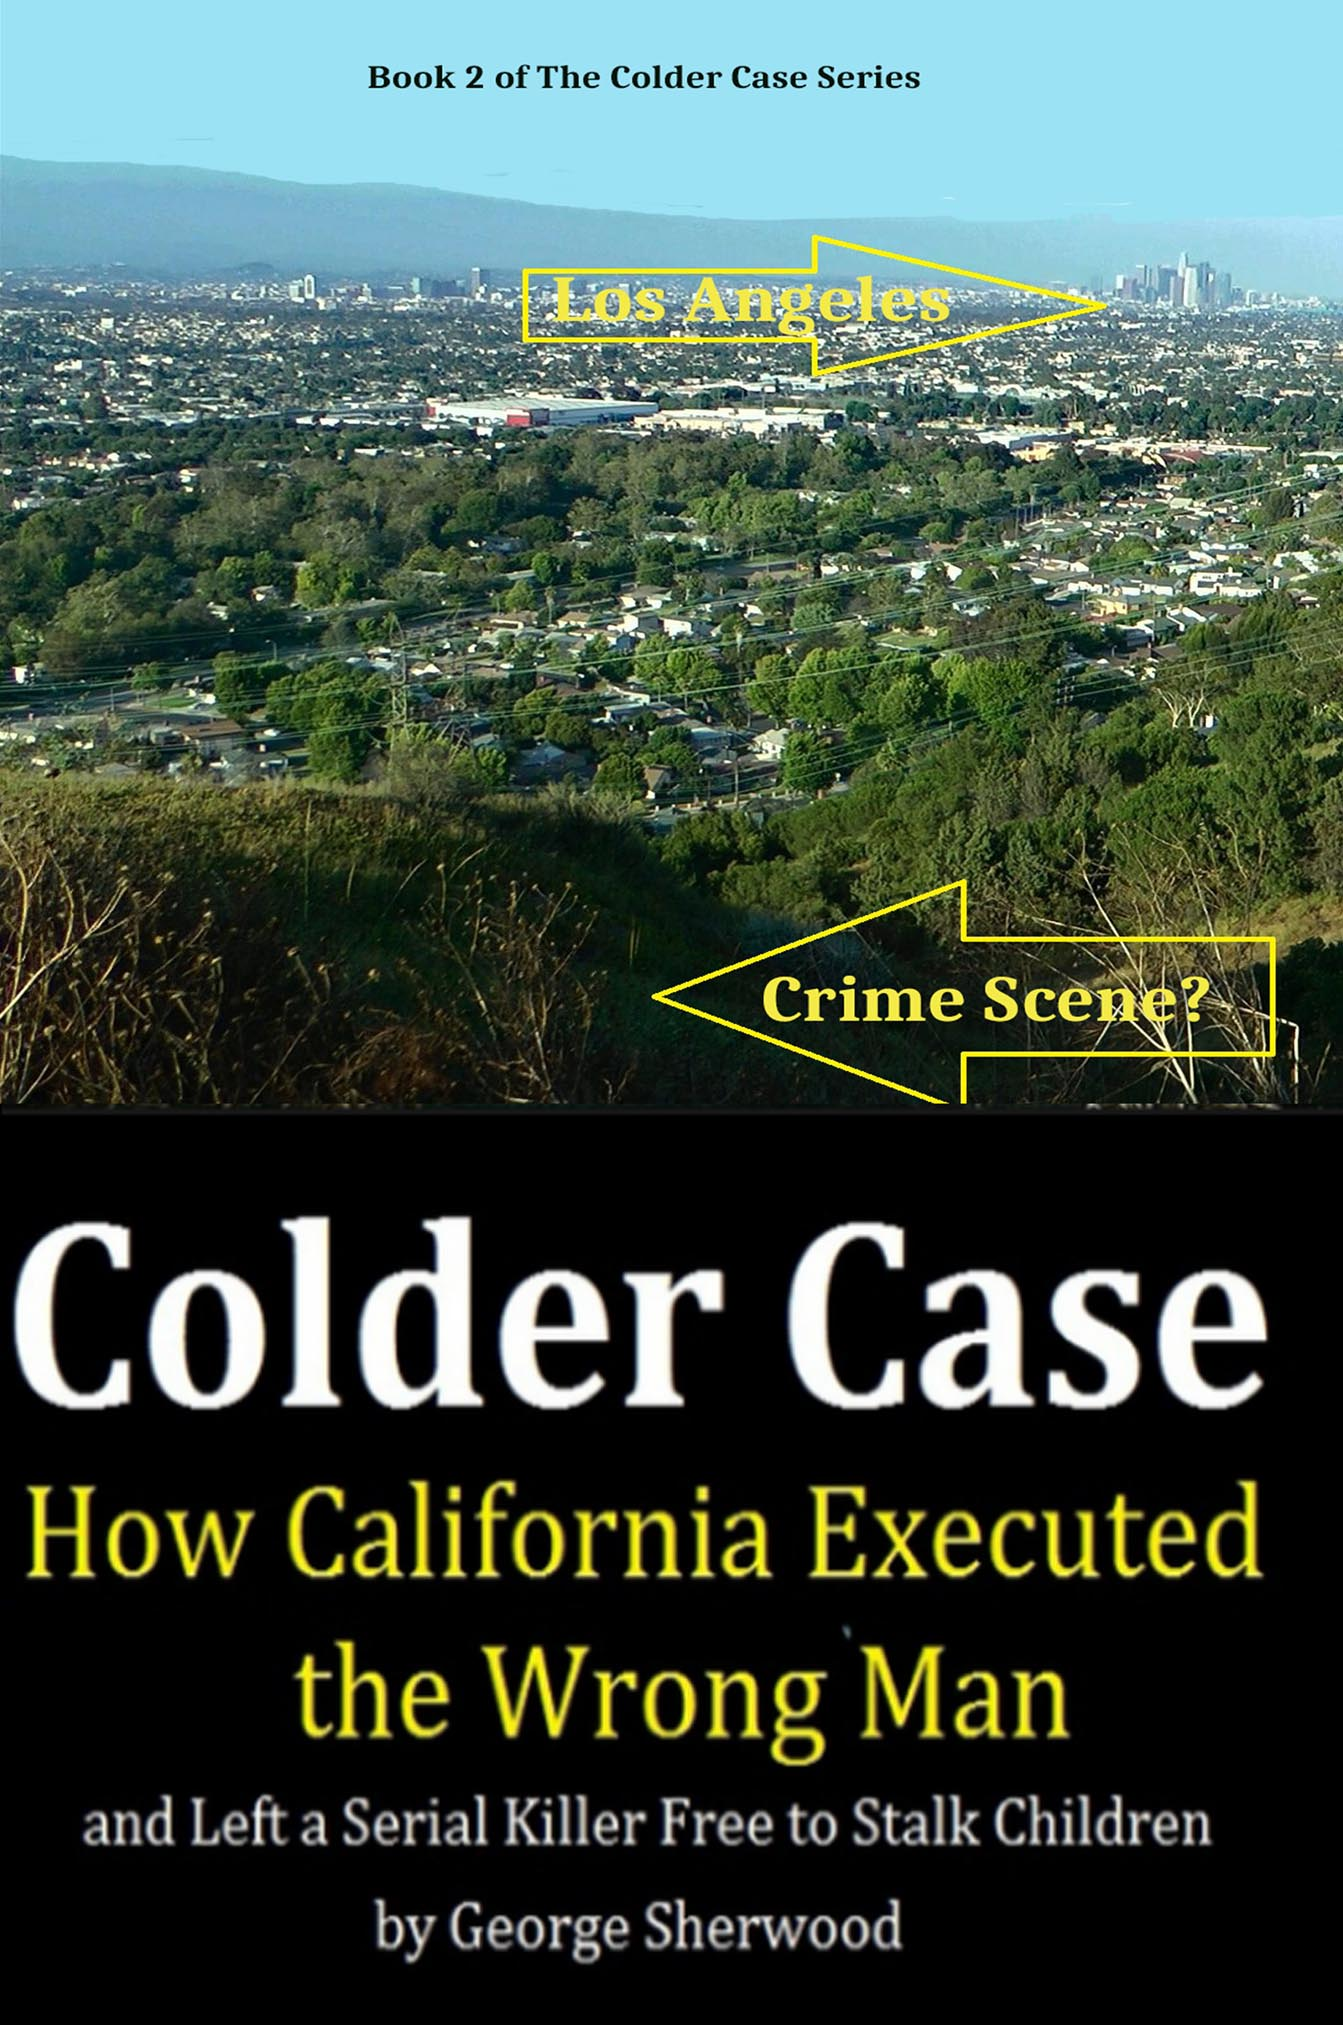 The Colder Case Series